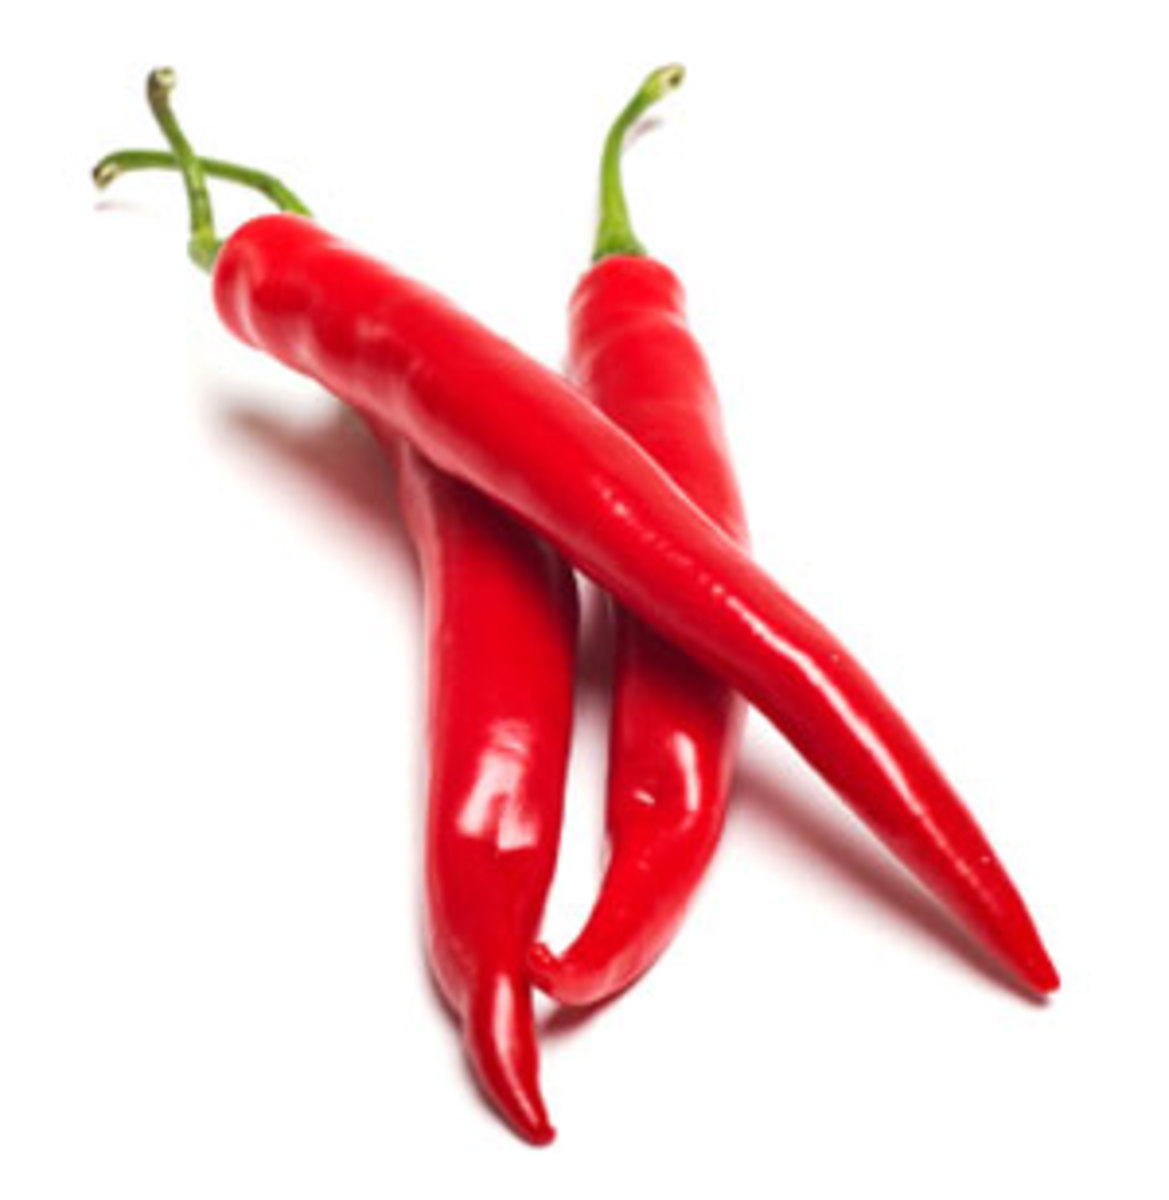 Cayenne peppers.